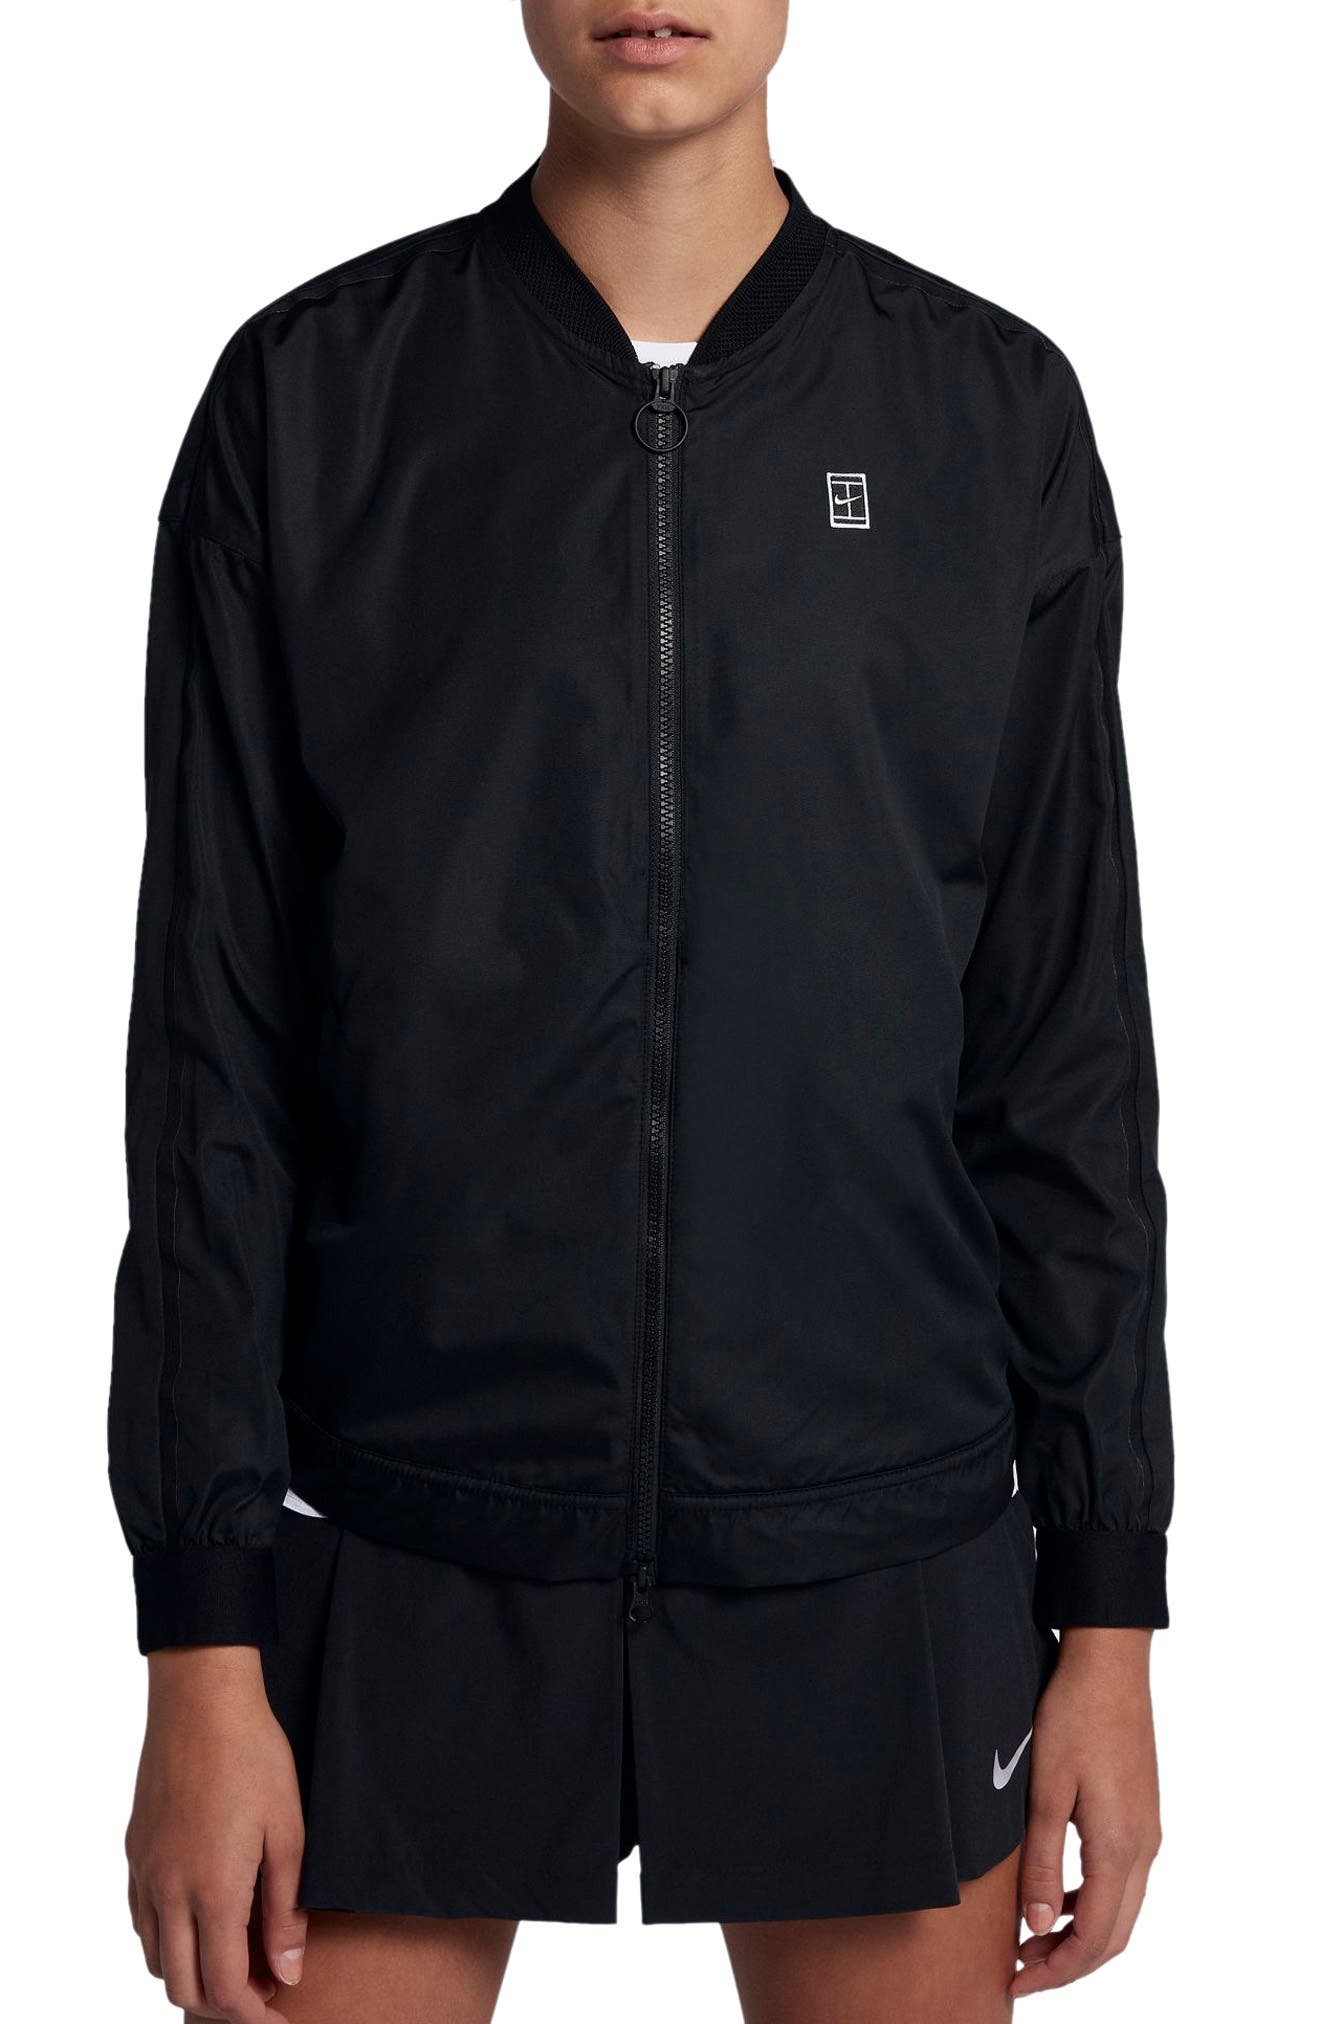 Court Water-Resistant Bomber Jacket,                             Main thumbnail 1, color,                             Black/ Summit White/ White